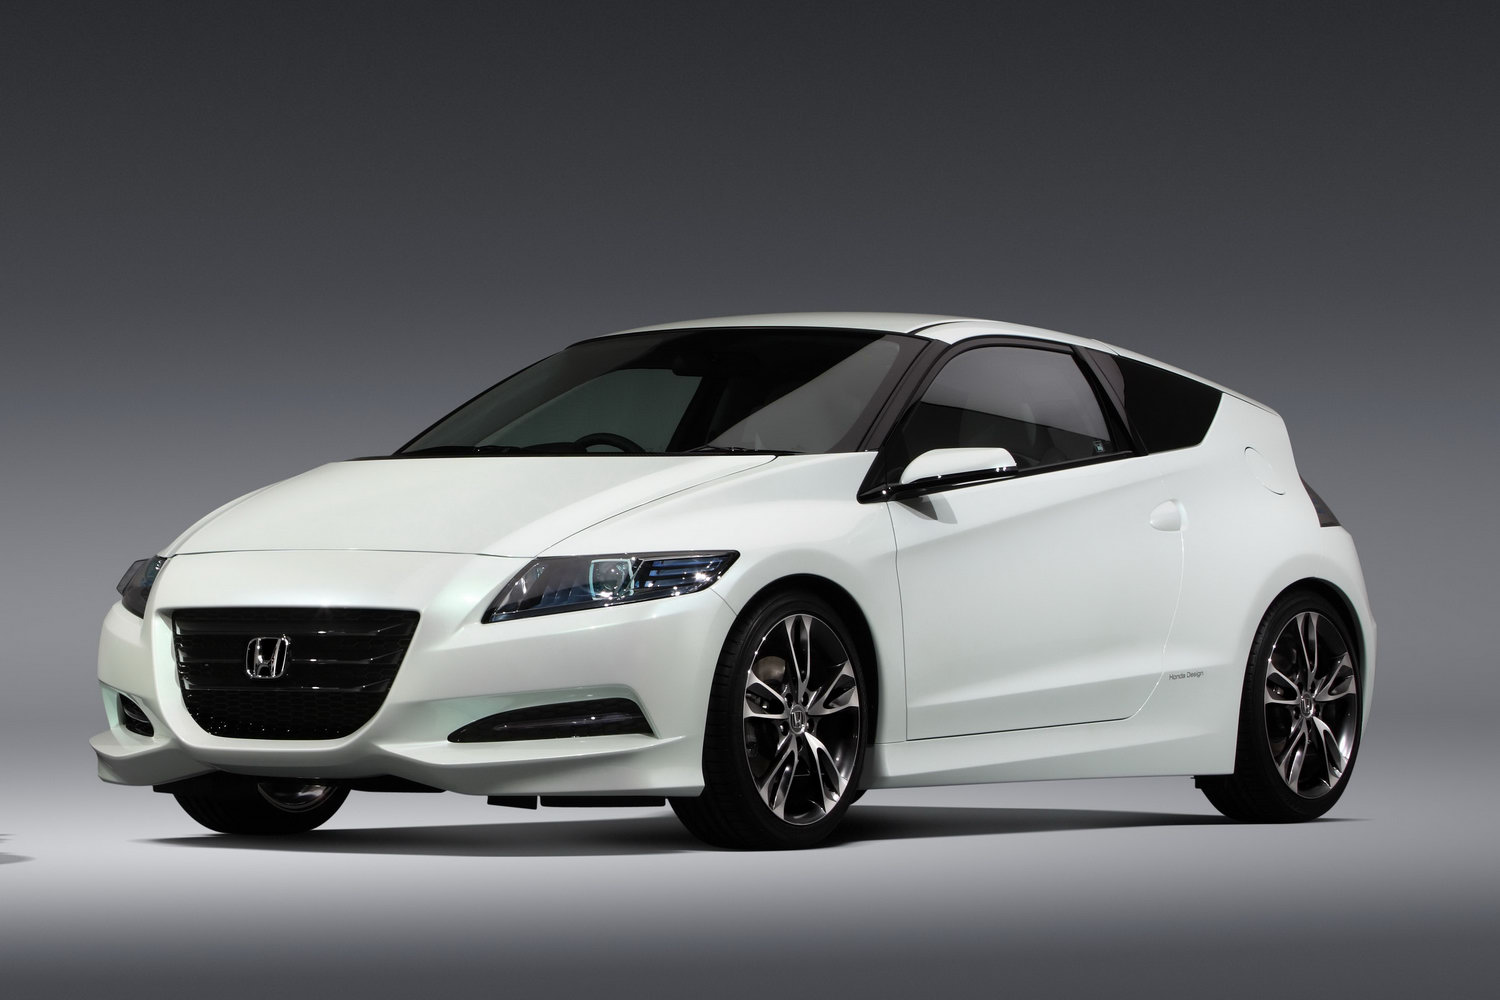 honda cr z sports hybrid price in pakistan pictures and. Black Bedroom Furniture Sets. Home Design Ideas